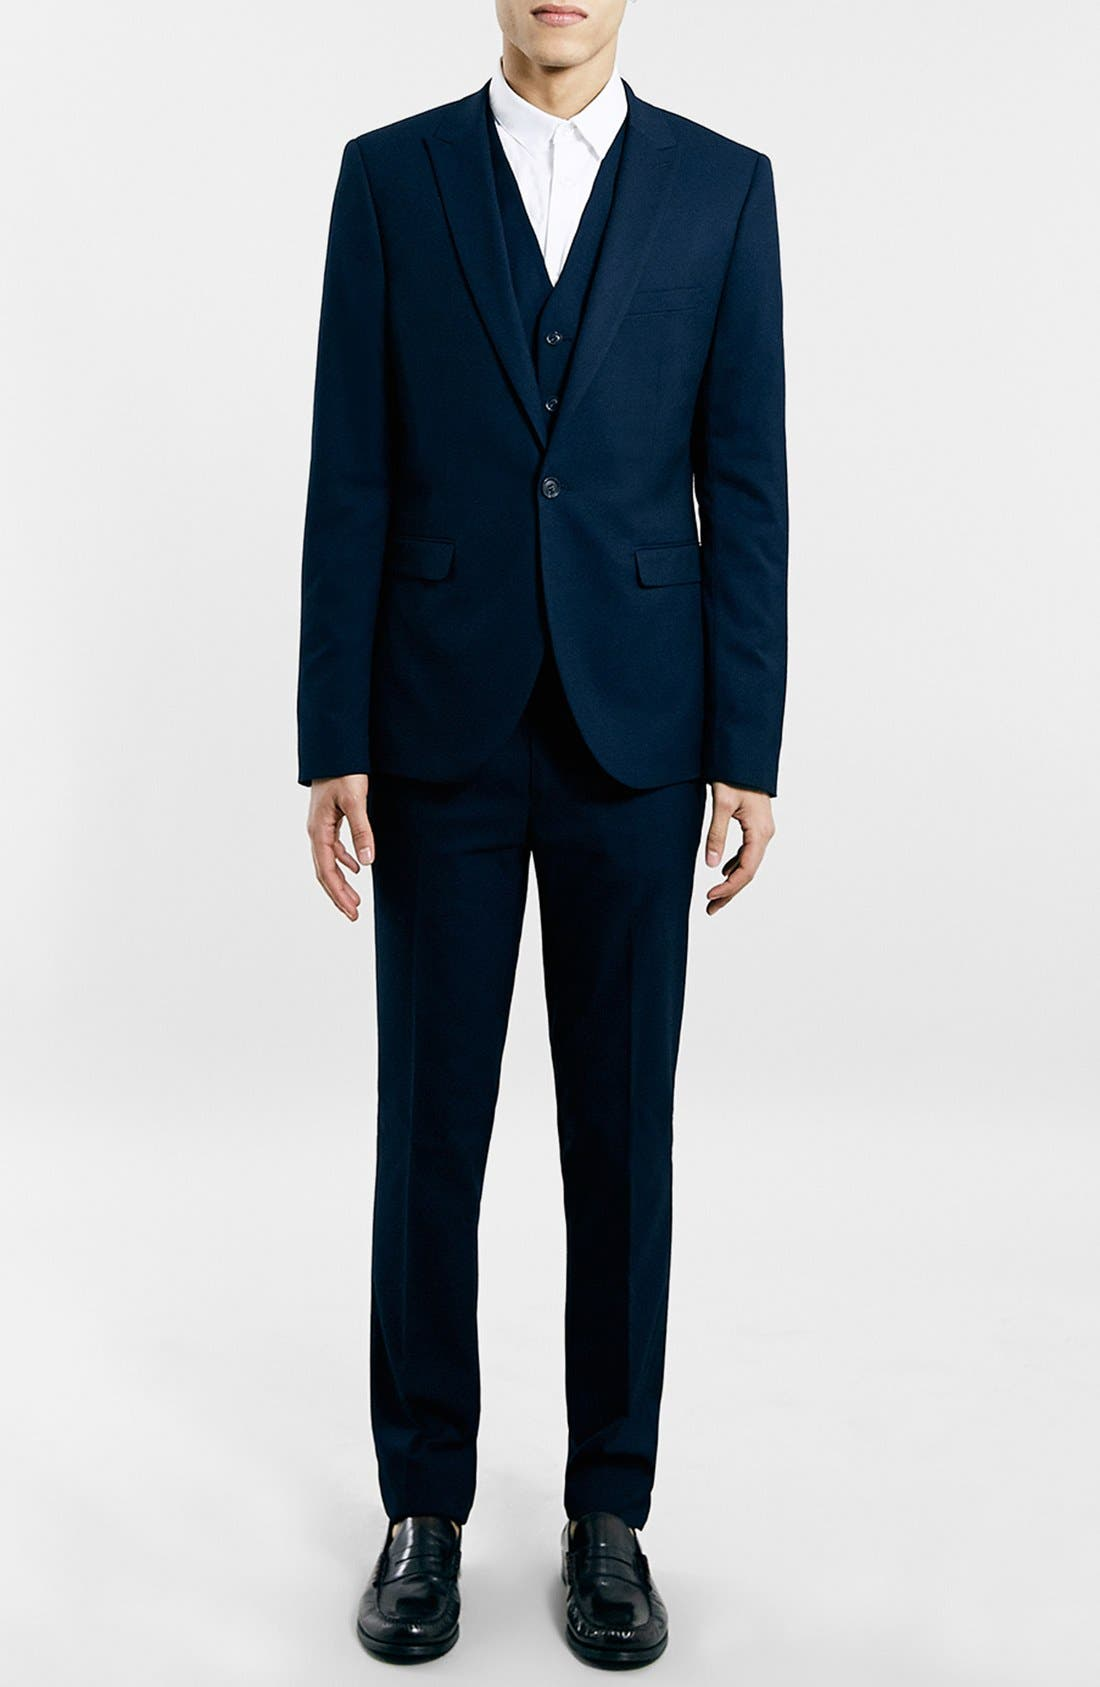 TOPMAN, Navy Textured Skinny Fit Suit Jacket, Alternate thumbnail 3, color, 410